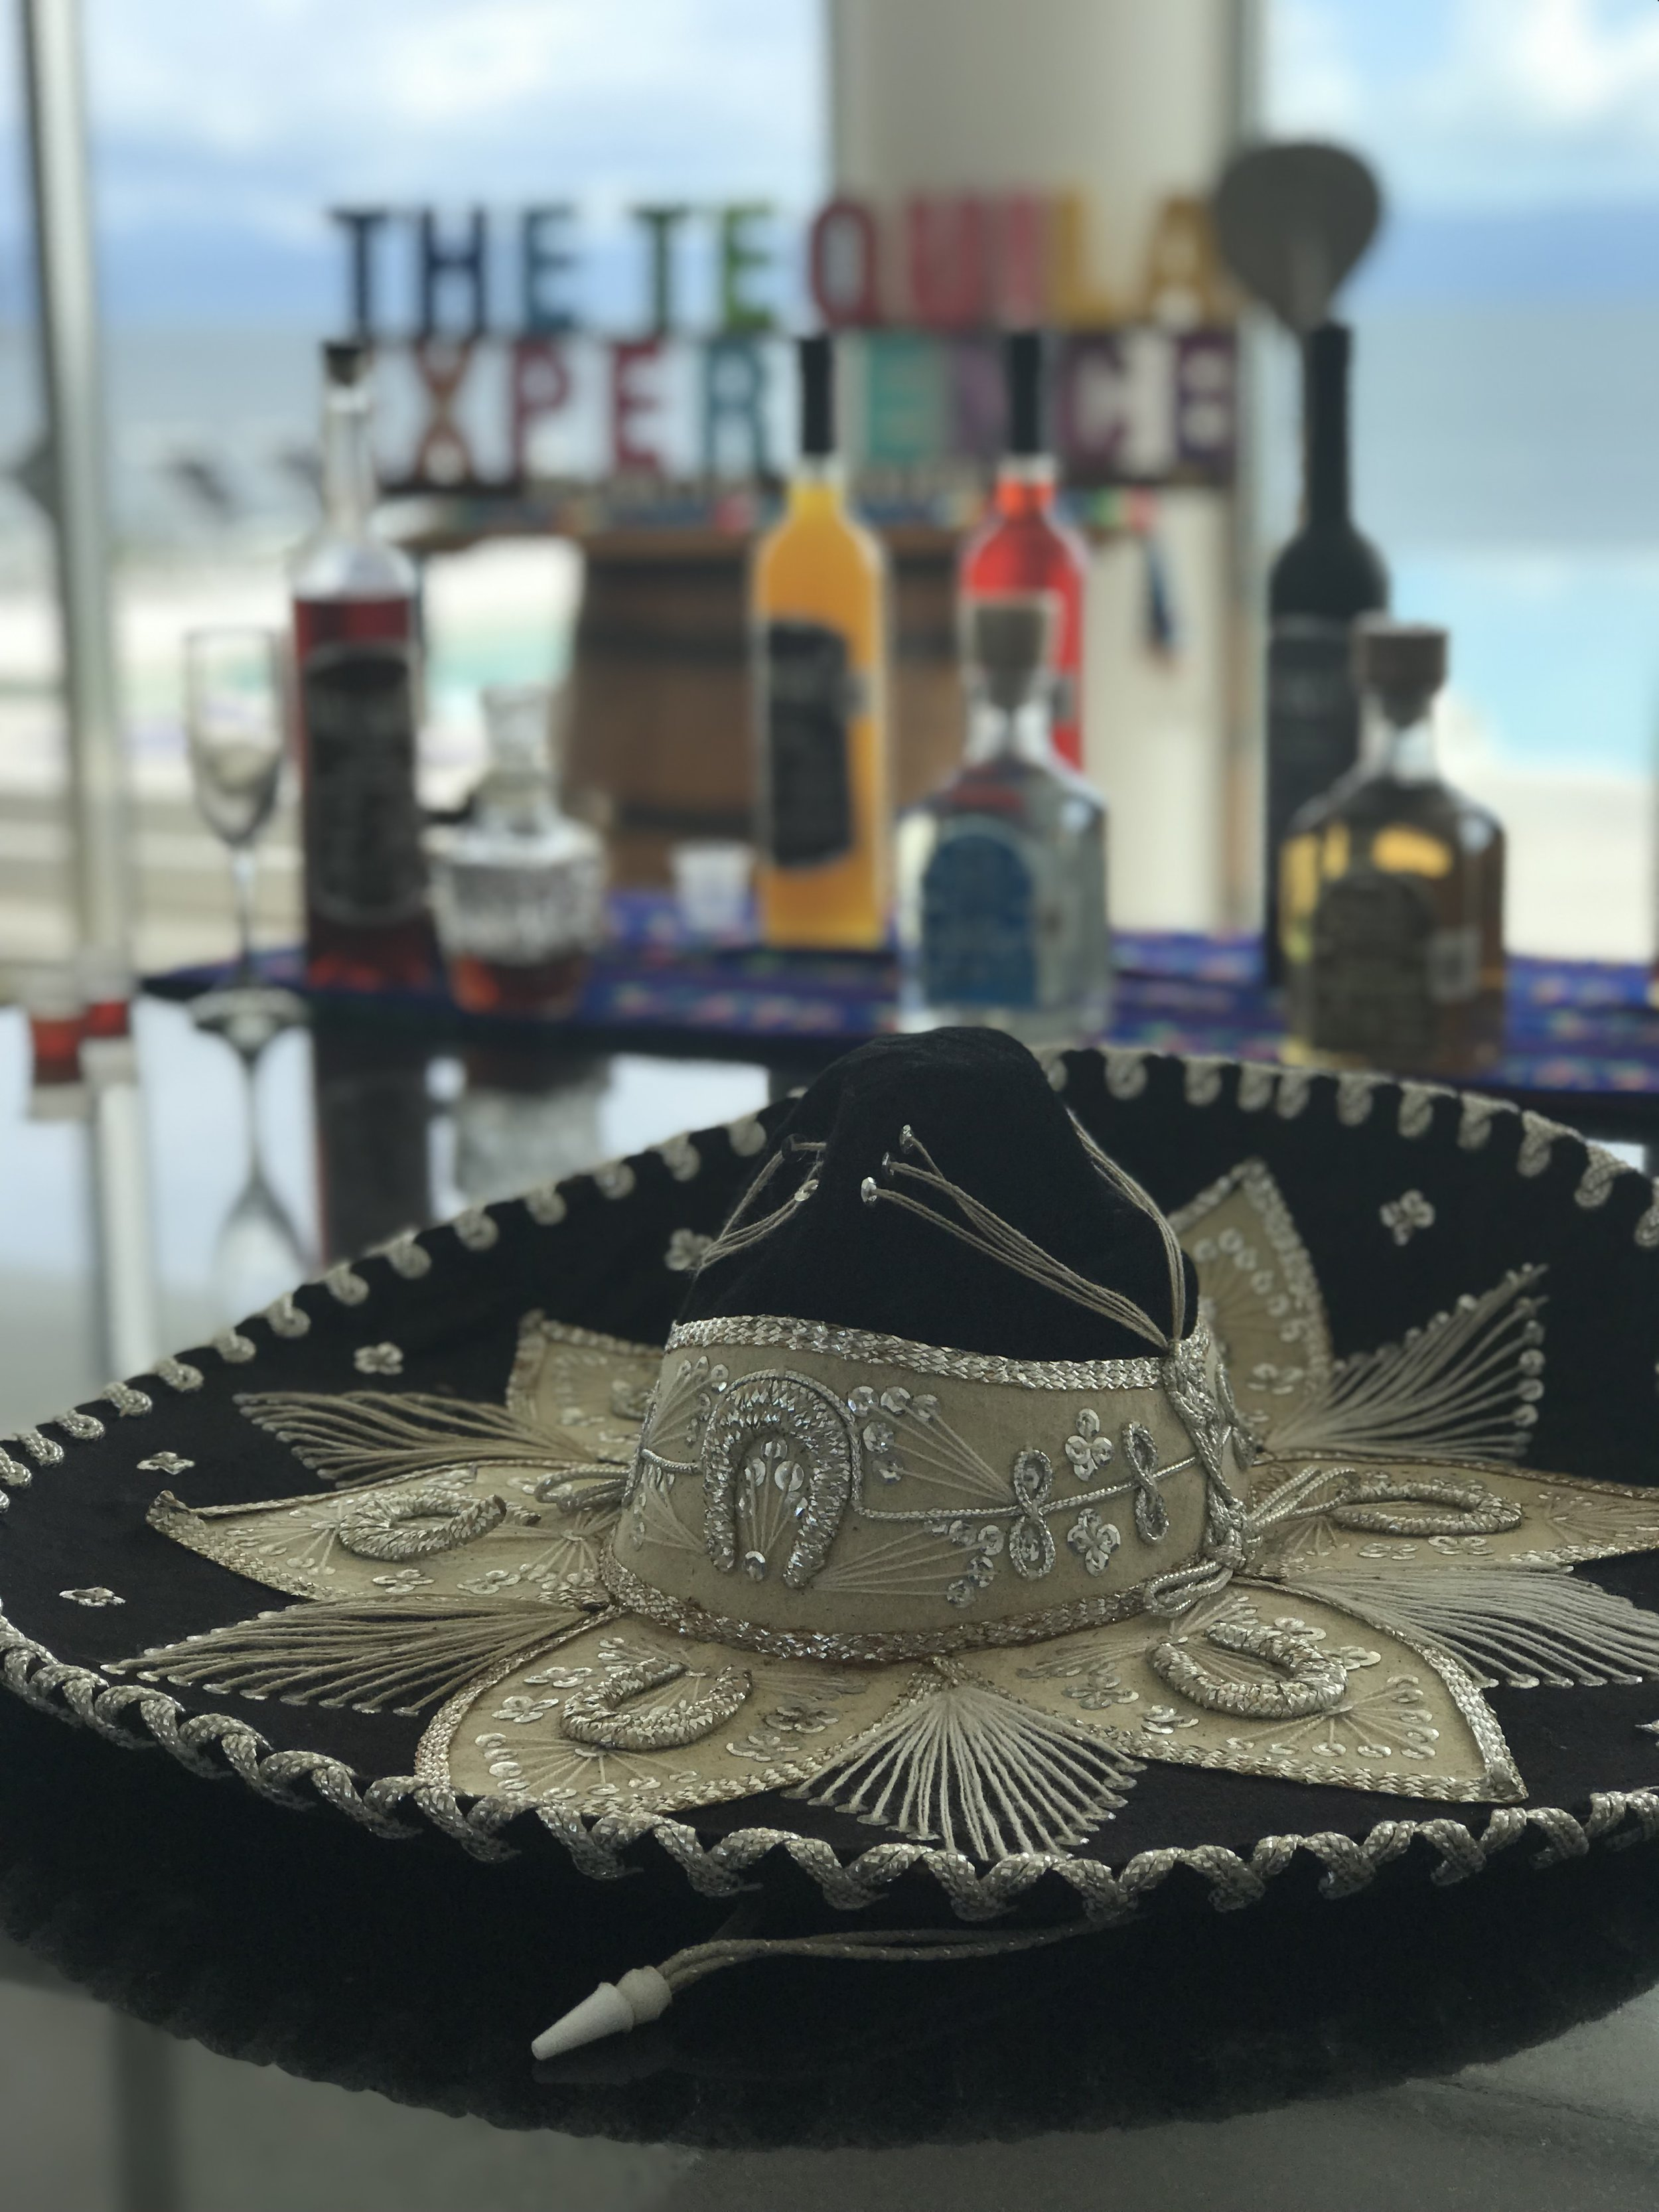 Tequila tasting comes to you!  Learn about the art of tequila making.